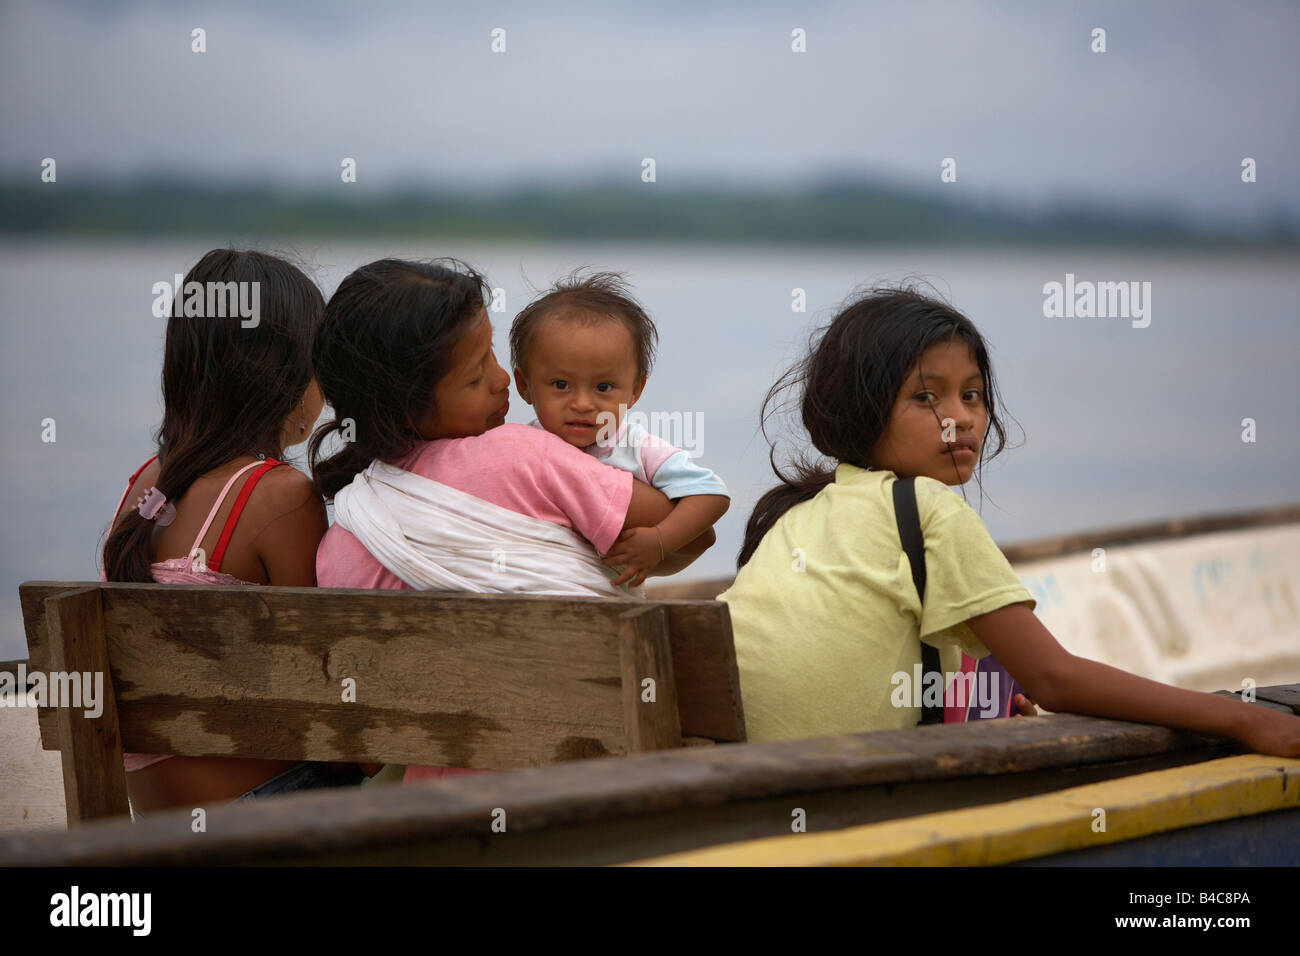 Girls  on water taxi, Napo River, Amazon Rain Forest, Ecuador - Stock Image